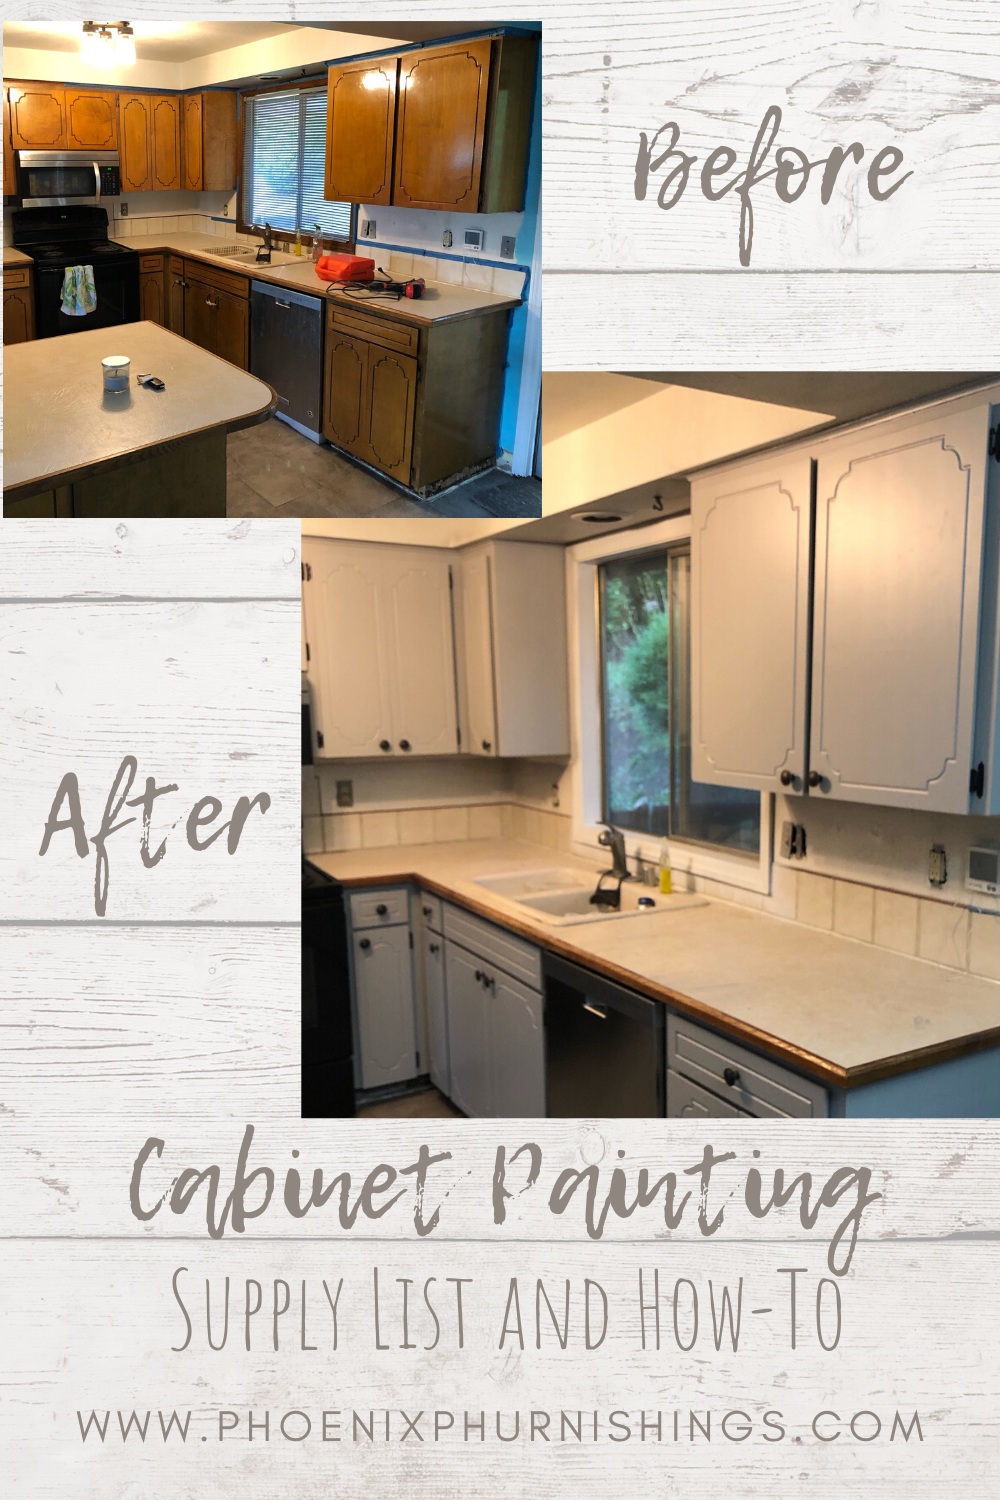 Kitchen Cabinet Makeover How To Guide In 2020 Kitchen Cabinets Kitchen Cabinets Makeover Cabinet Makeover